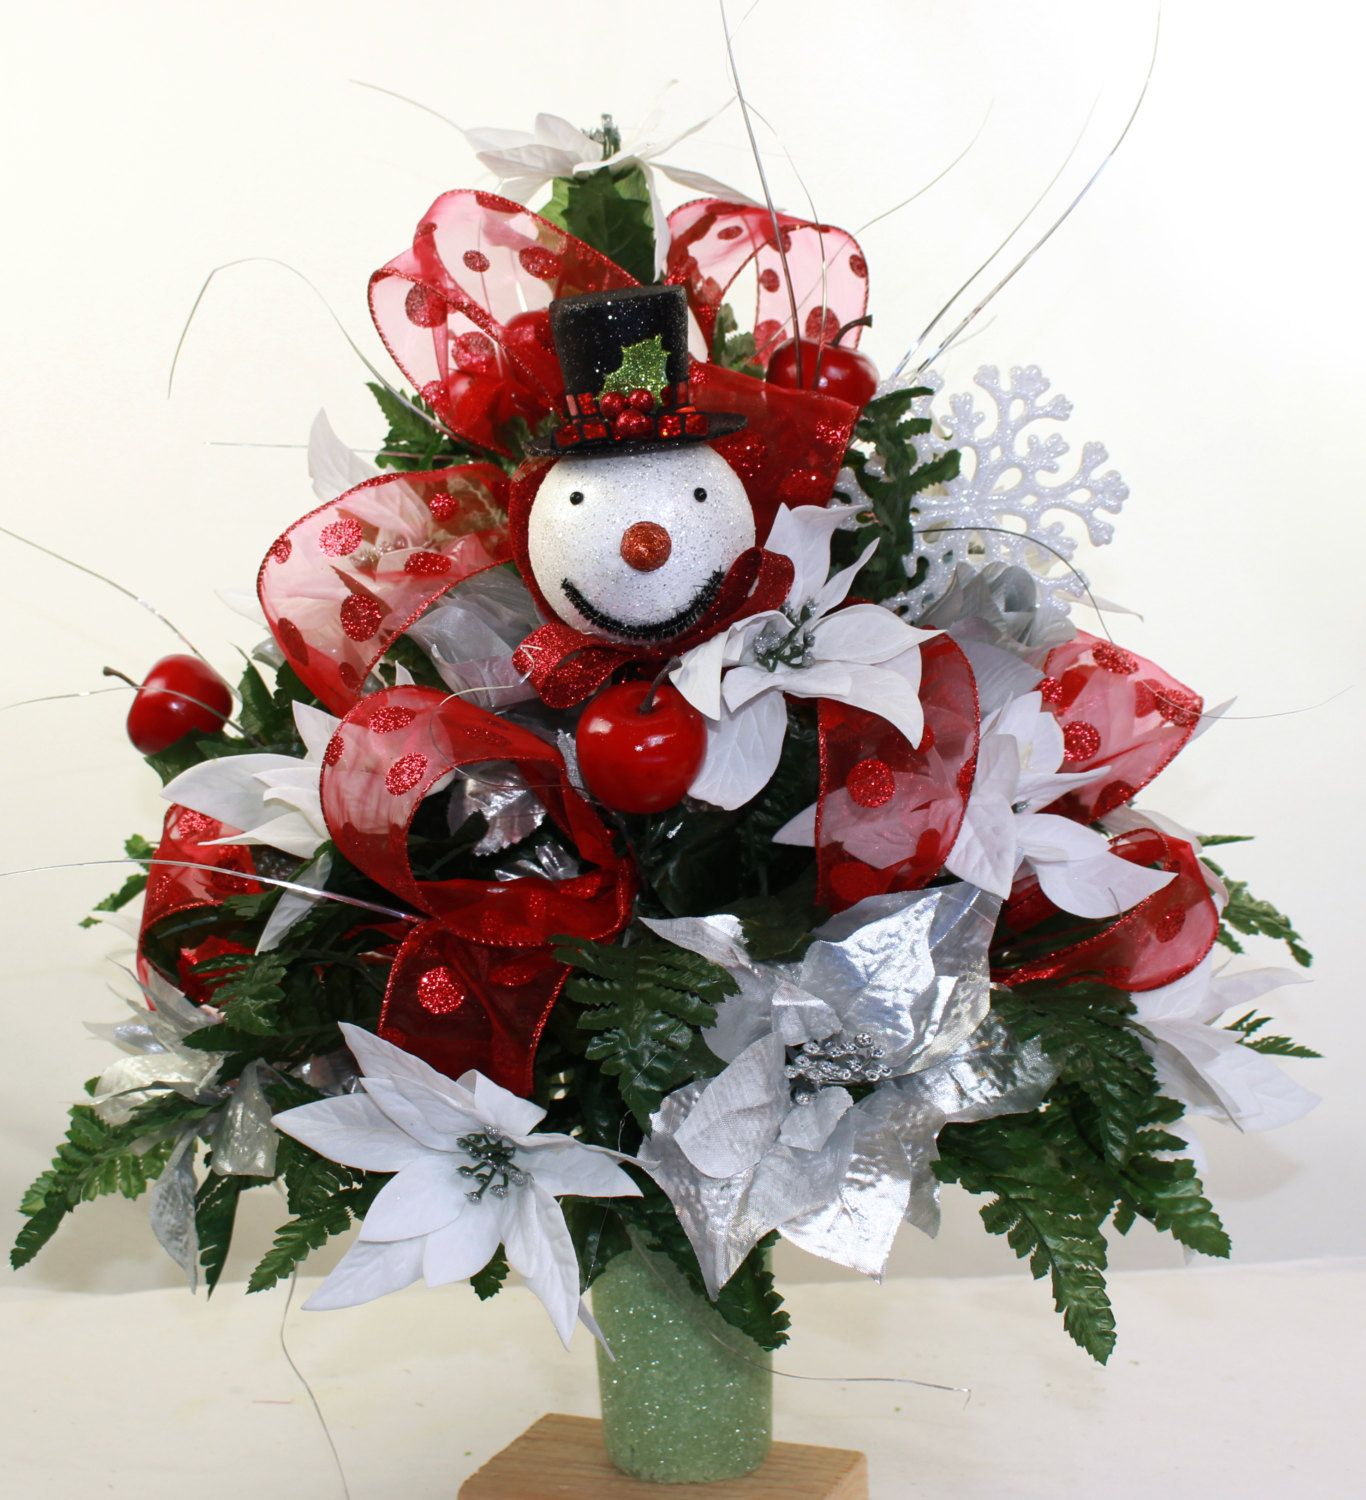 flower vases pour steckvase for gravvas you rose memorial remembrance will steekvaas in grabvase the or vase find cemetery gifts decorations grave at uk grafvaas tombe legendurn